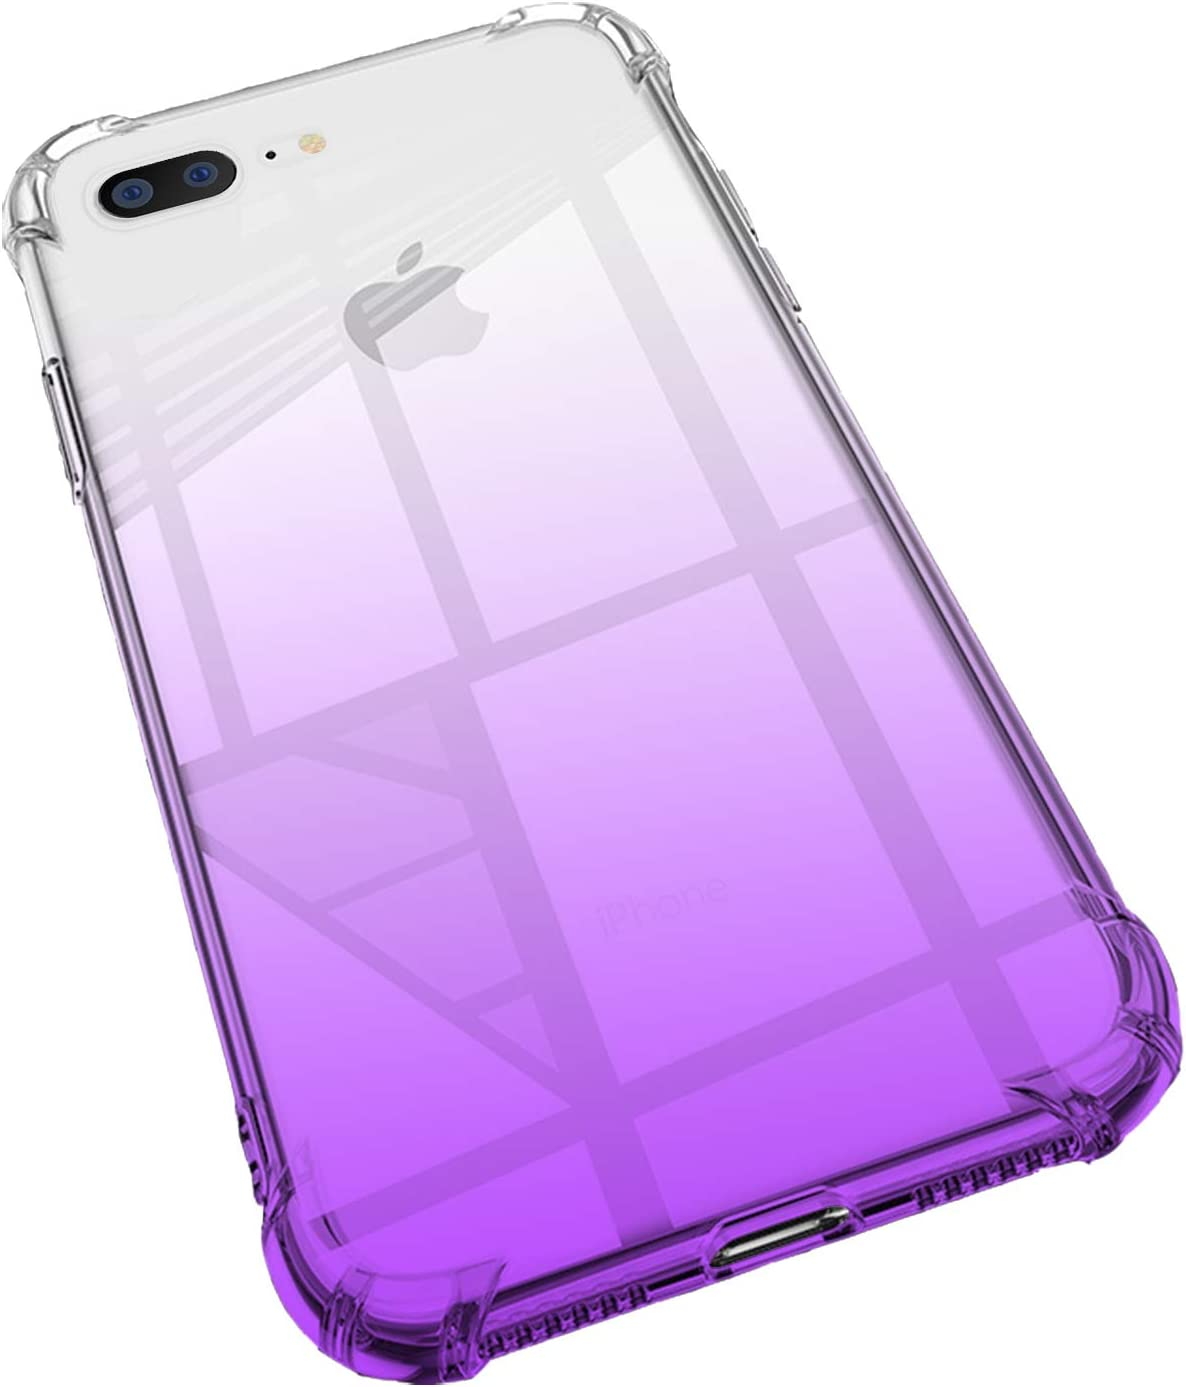 ANHONG iPhone 7 Plus / 8 Plus Clear Purple Case, Gradient Slim Fit Protective Heavy Duty Soft TPU Rubber Gel Silicone Shockproof Phone Cover Case Compatible with iPhone 7 Plus / 8 Plus (Purple)